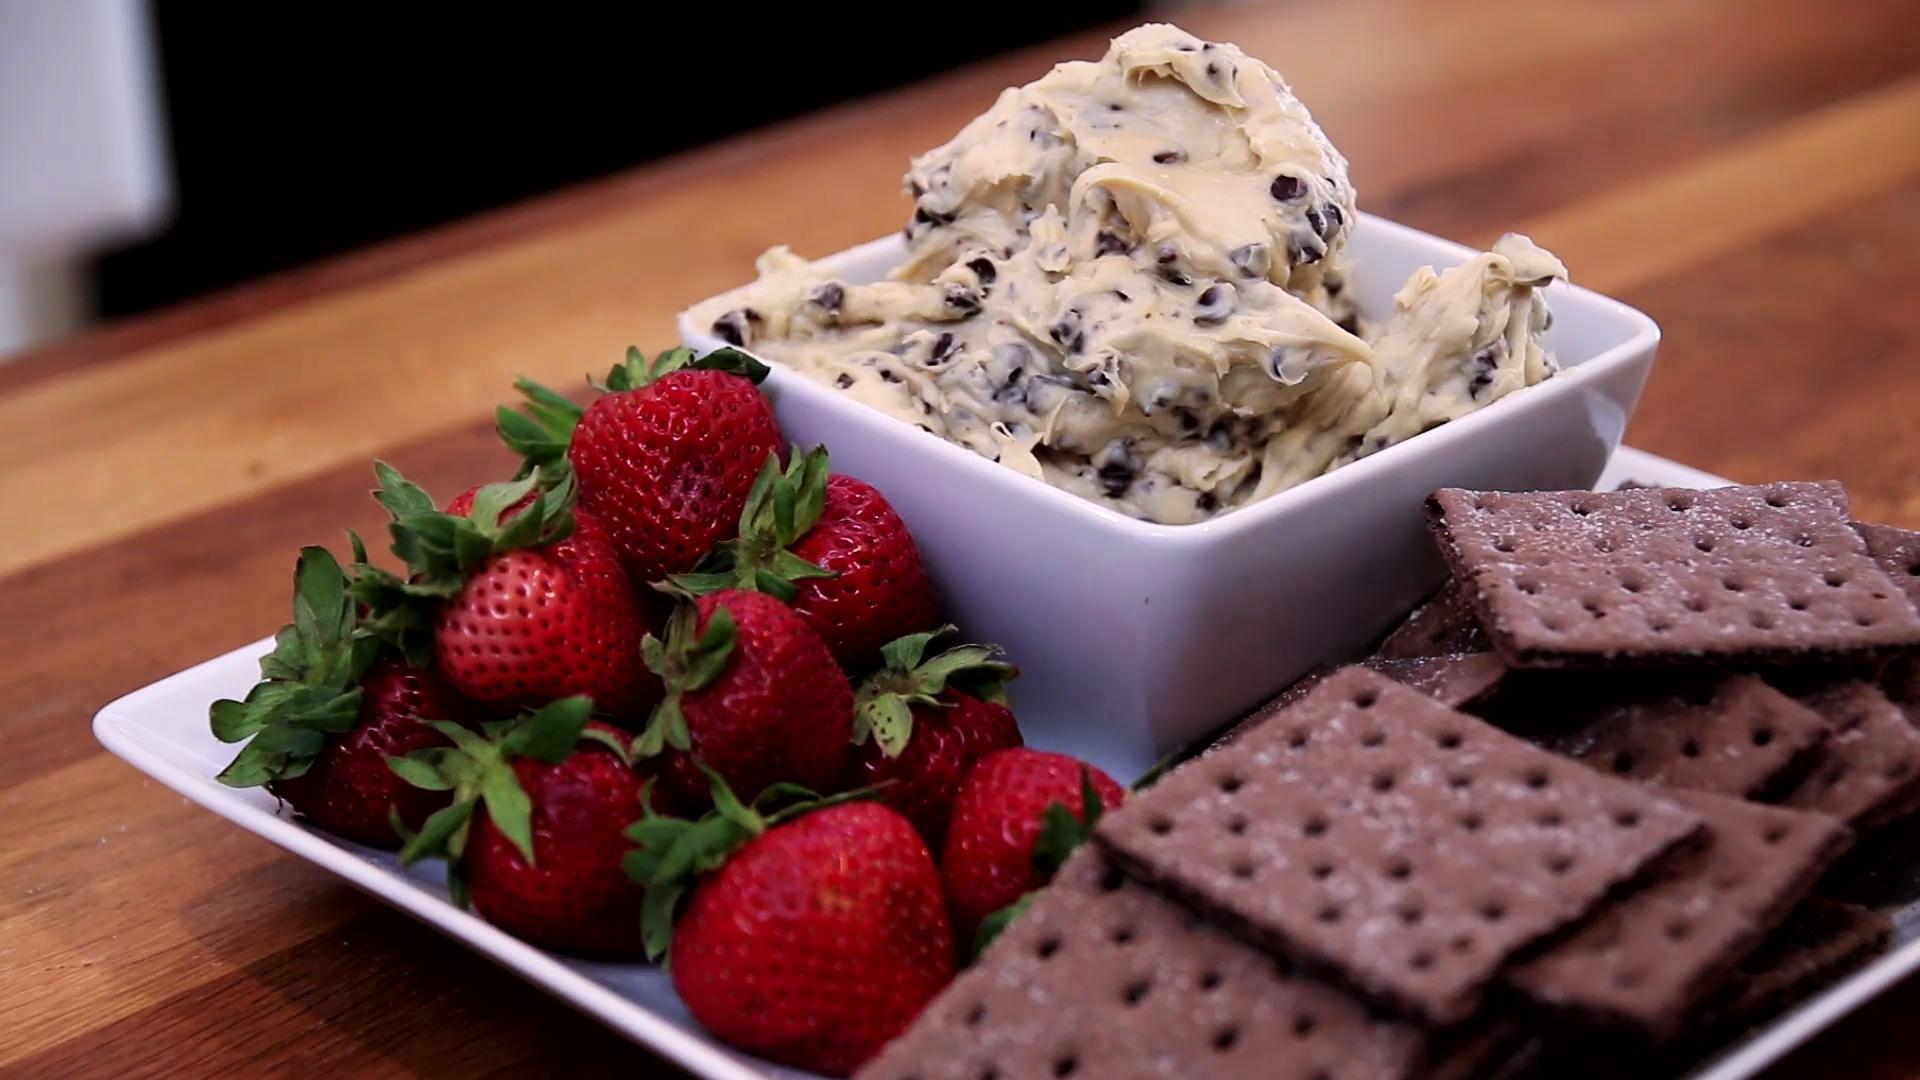 This Cookie Dough Dip is Insanely Delicious